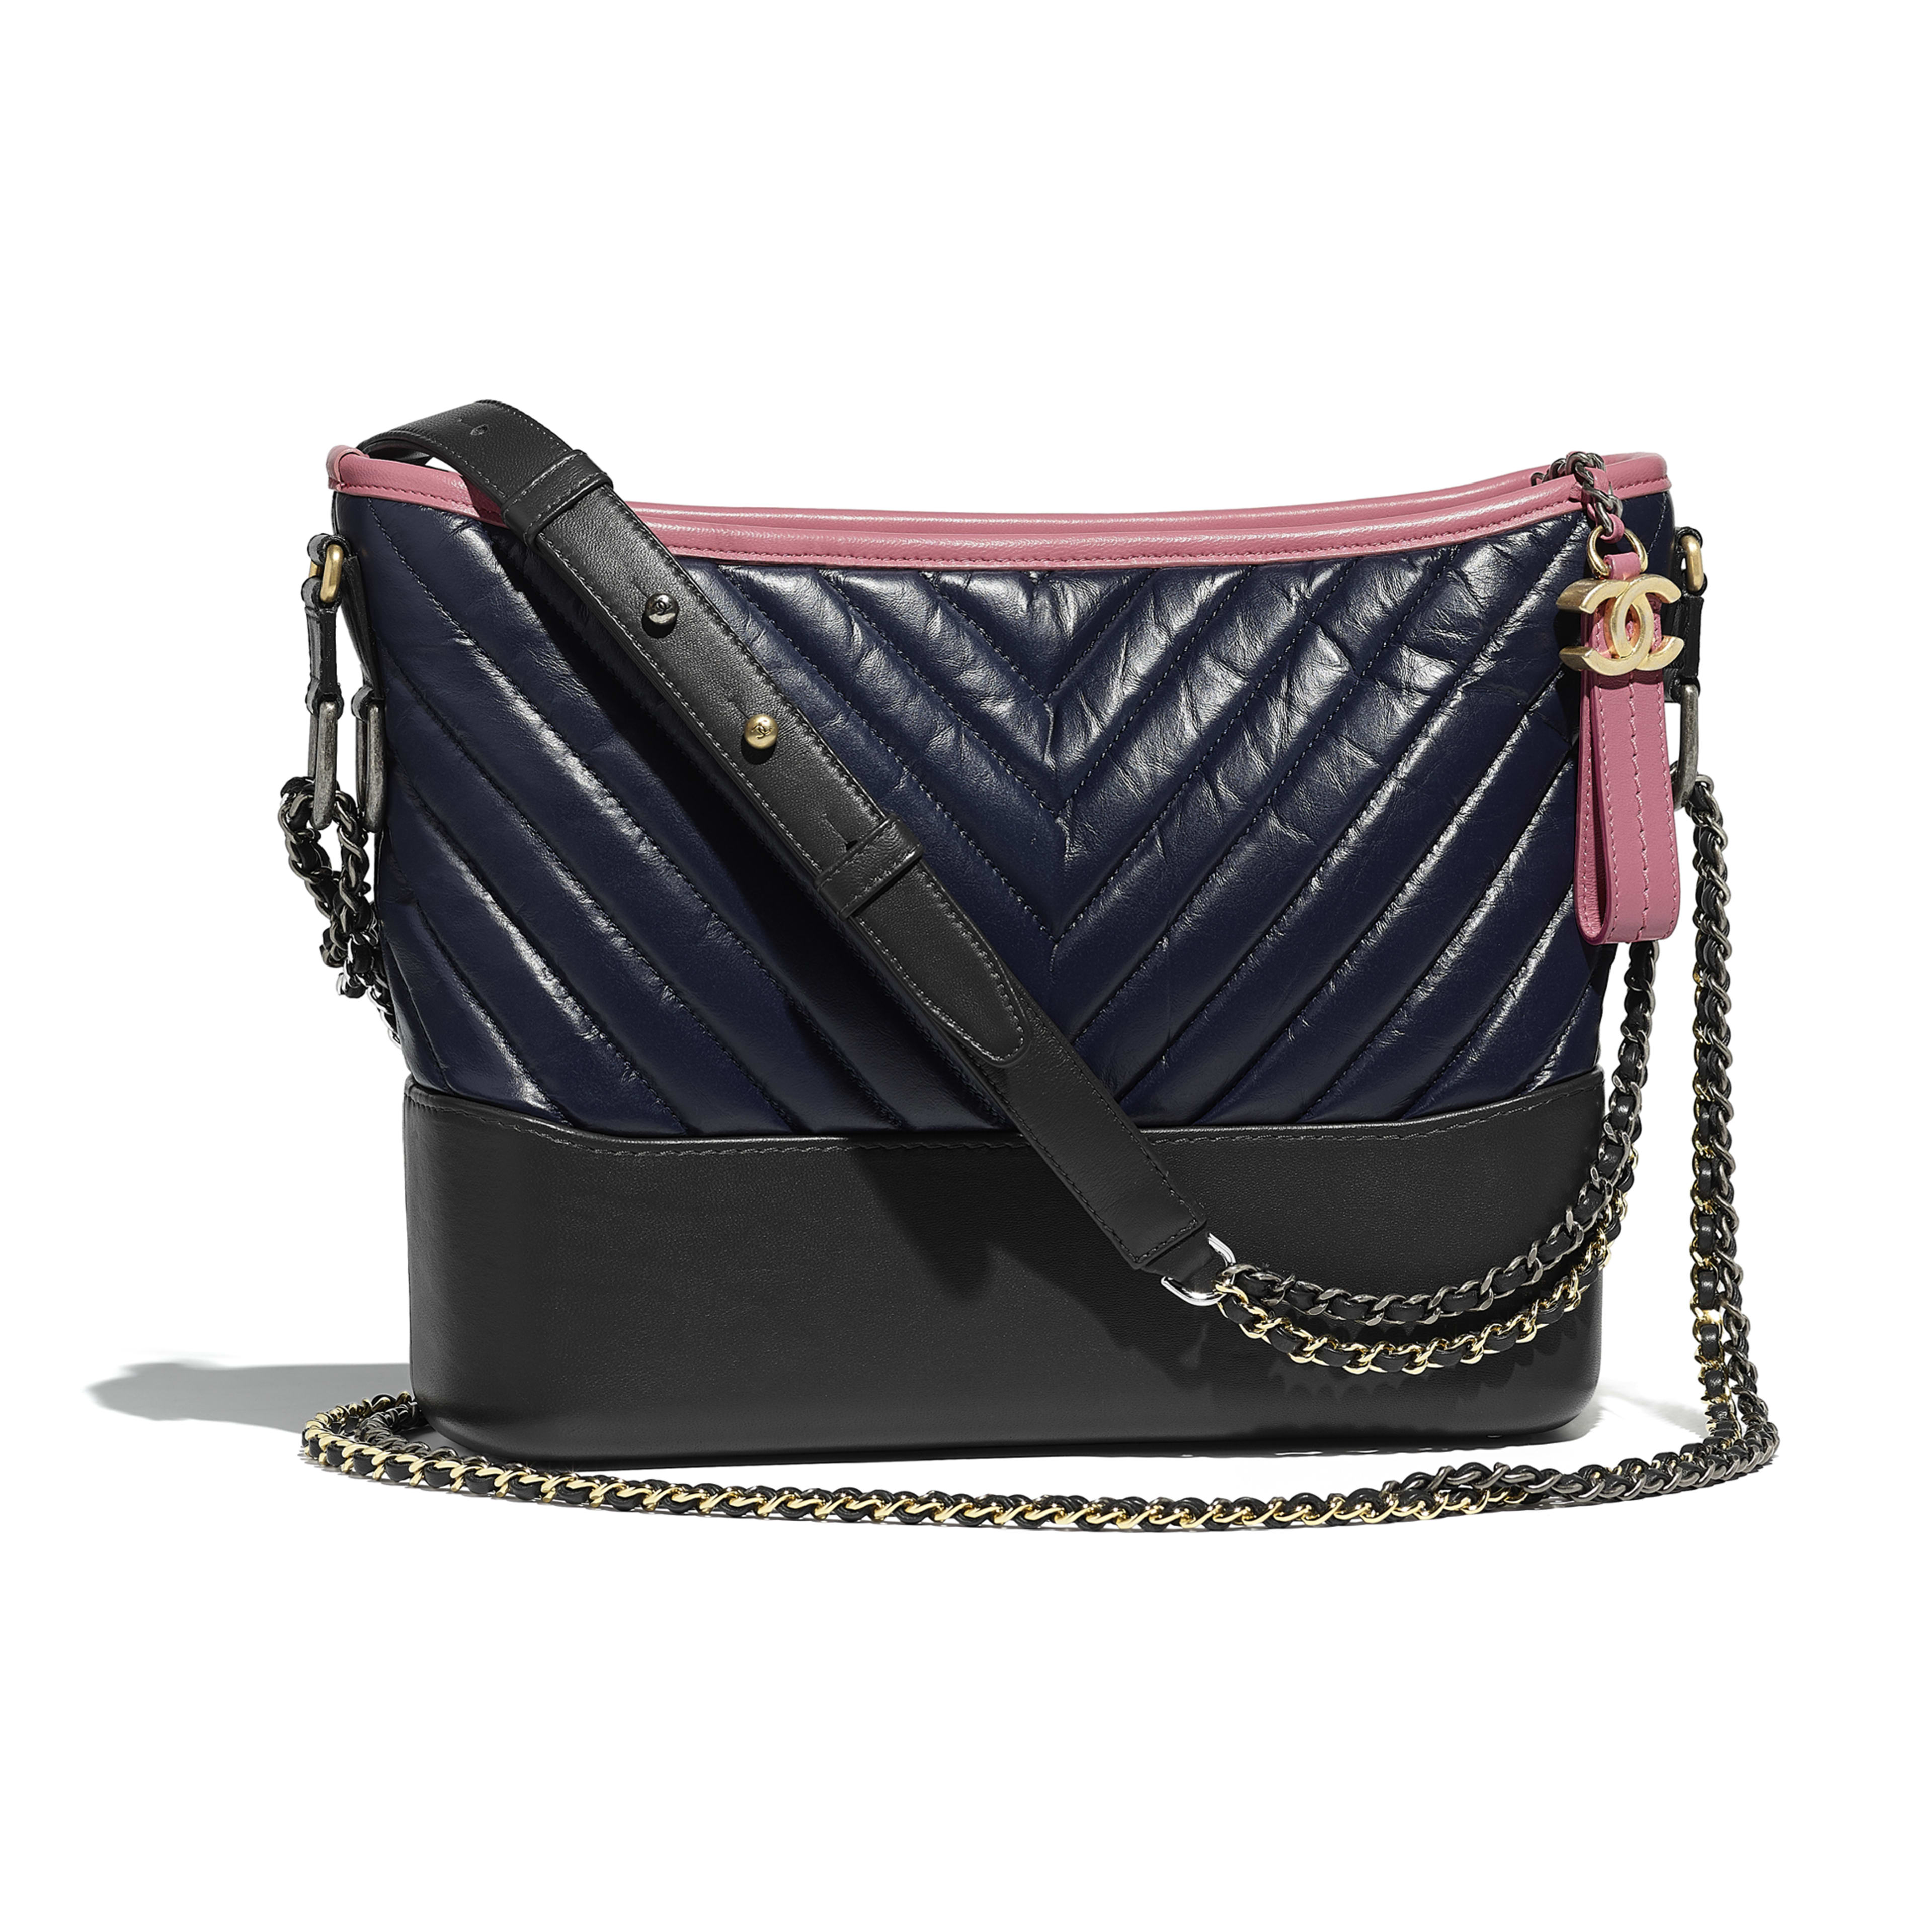 11163ed5eed4 Chanels gabrielle hobo bag navy blue charcoal pink aged calfskin jpg  3840x3840 Aged navy color code